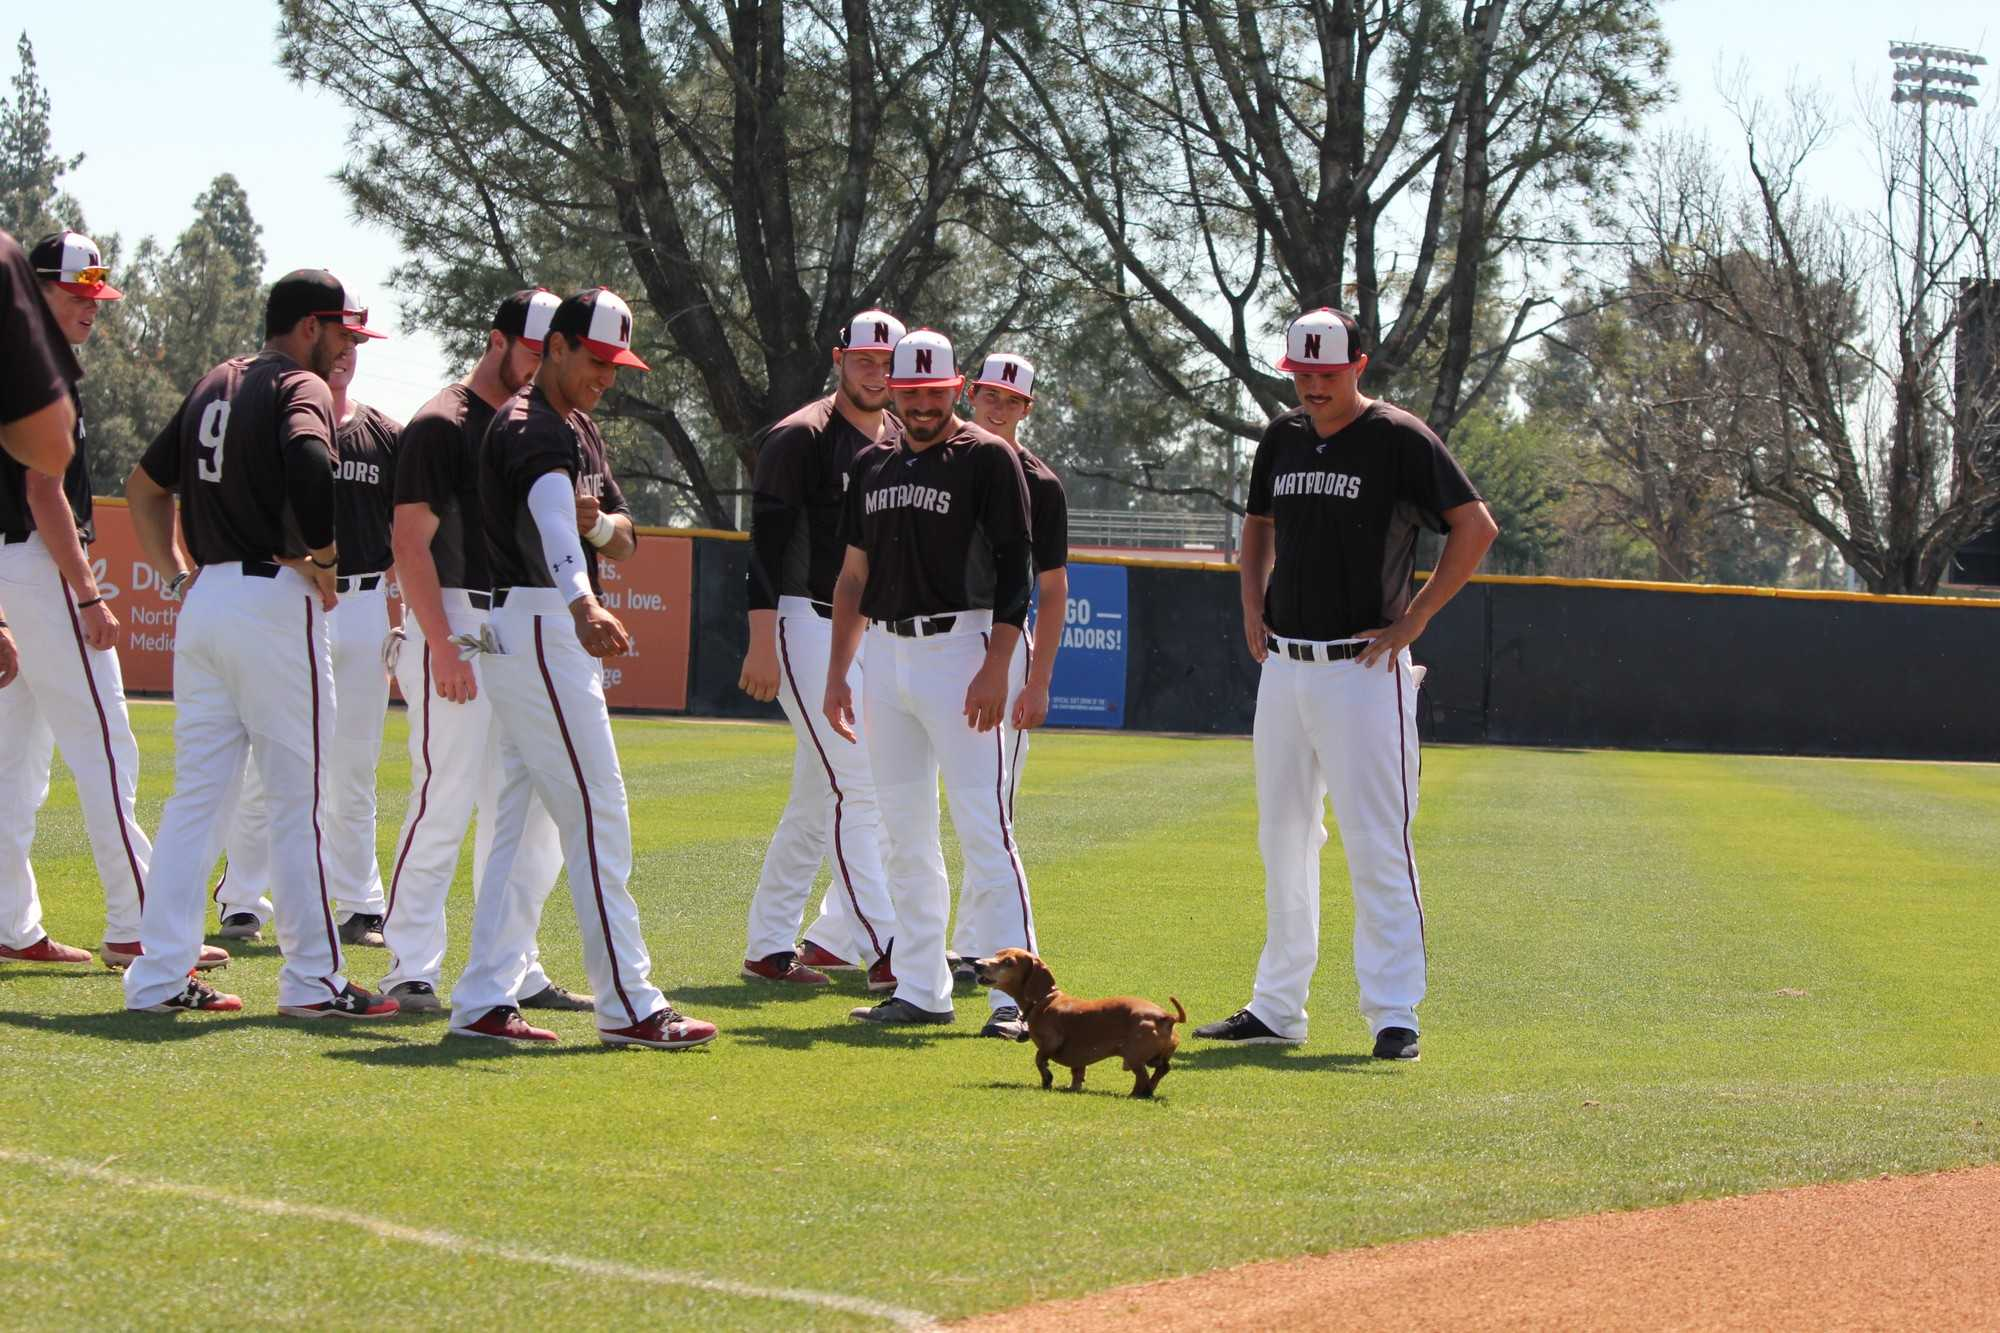 CSUN matadors baseball team on the field happily looking at a wiener dog